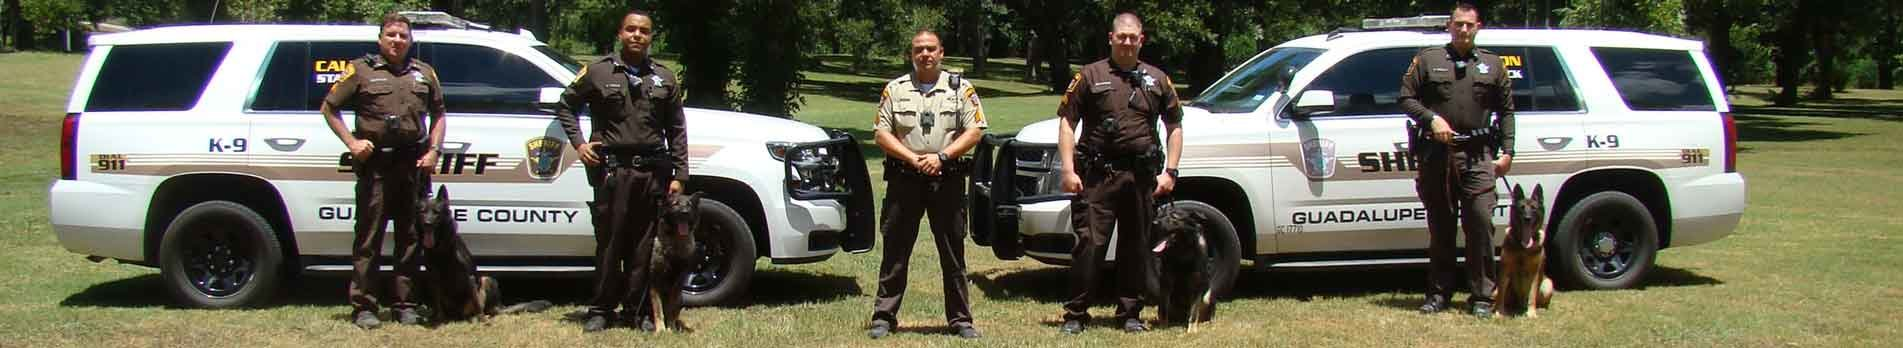 Guadalupe county officers standing next to their K9's.